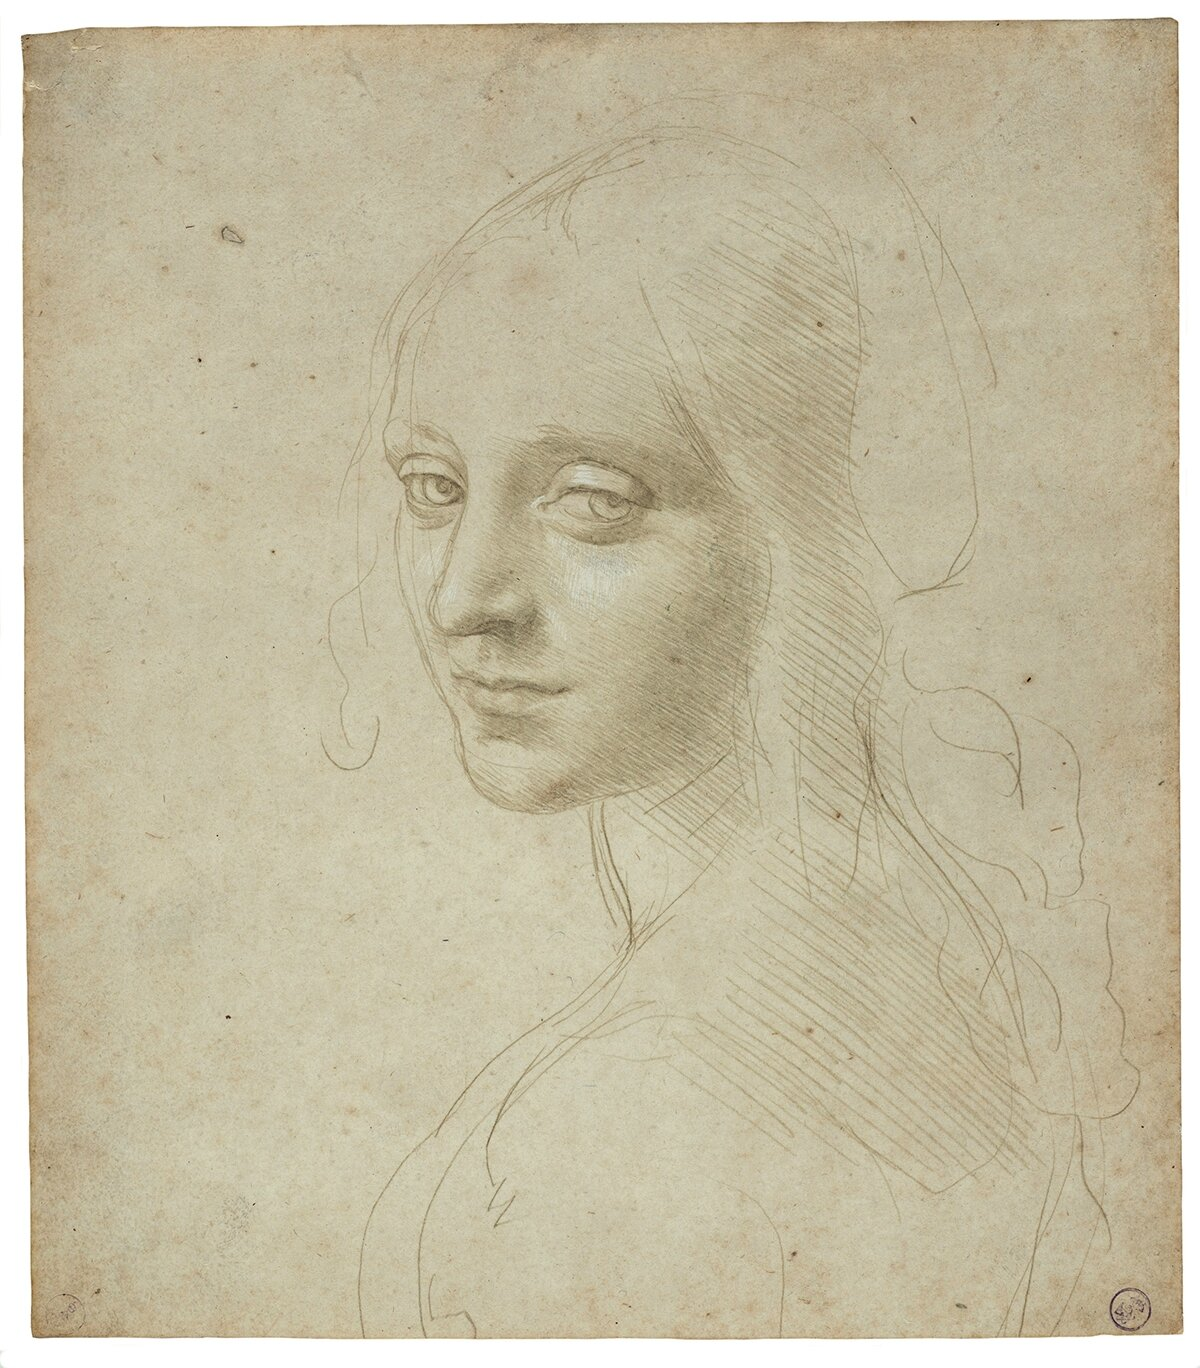 Recently discovered self-portrait headlines 'Leonardo da Vinci and the Idea of Beauty' at MFA Boston